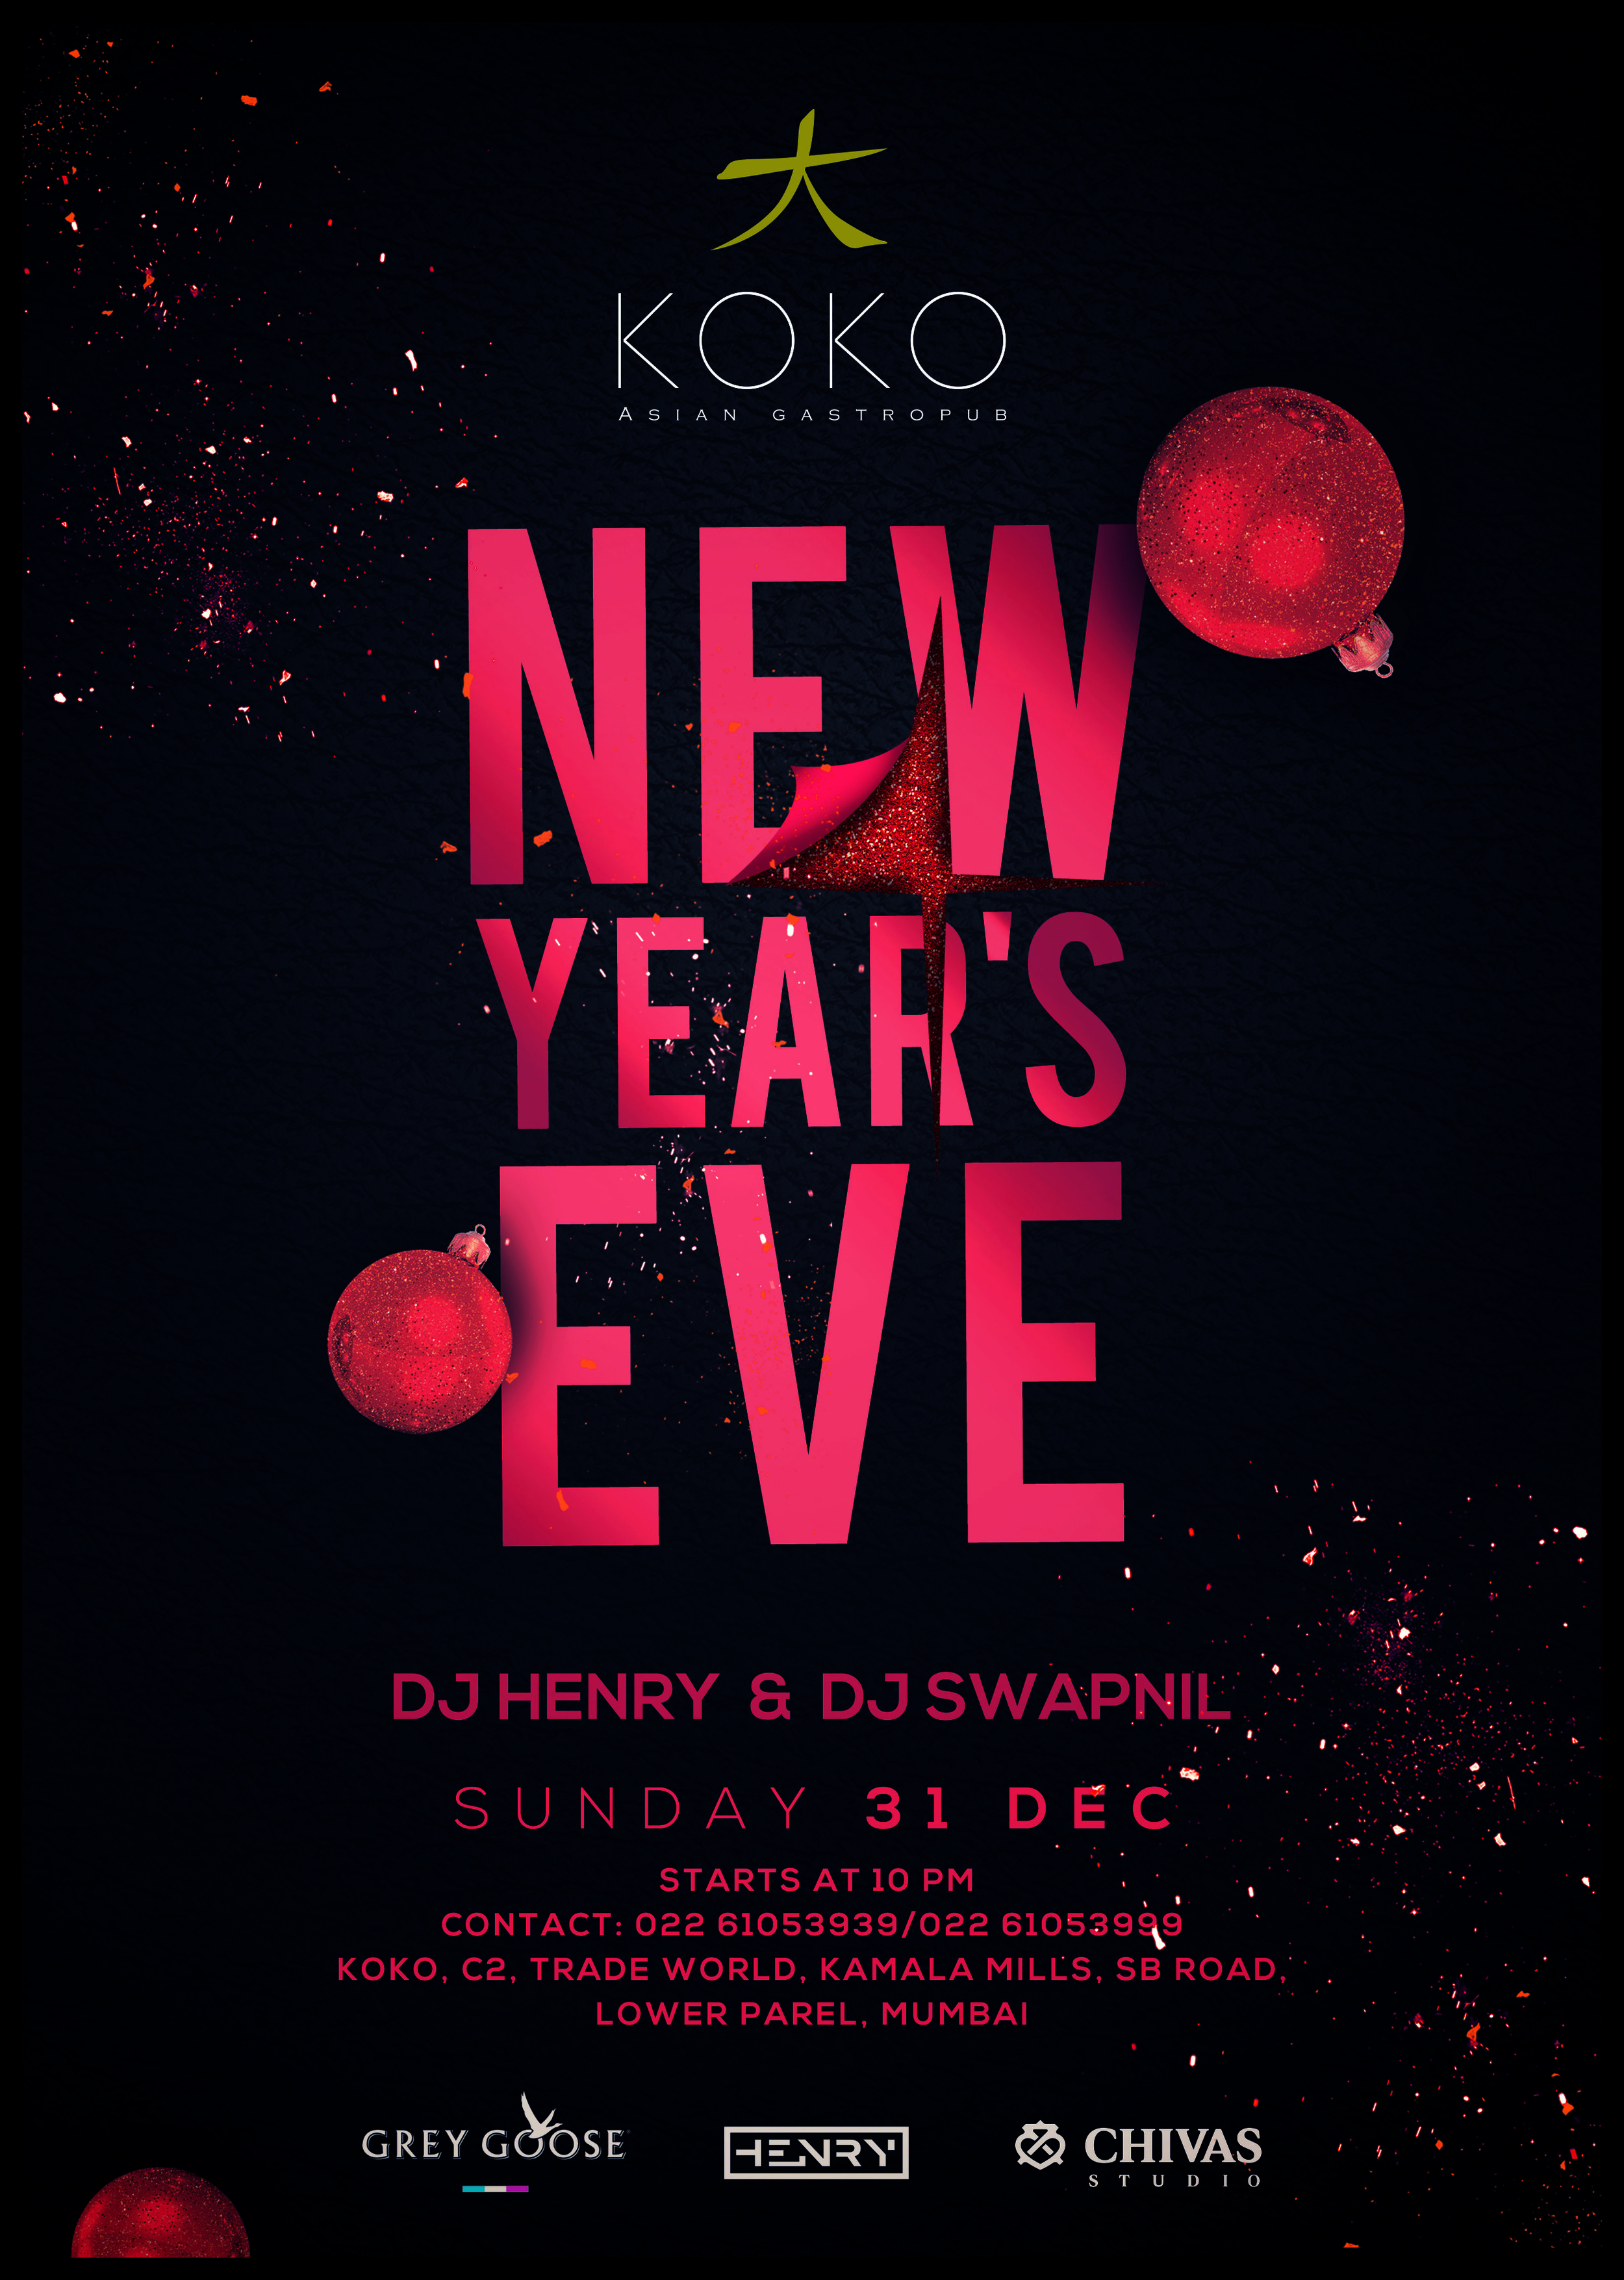 KOKO NYE REVISED FLYER.jpg